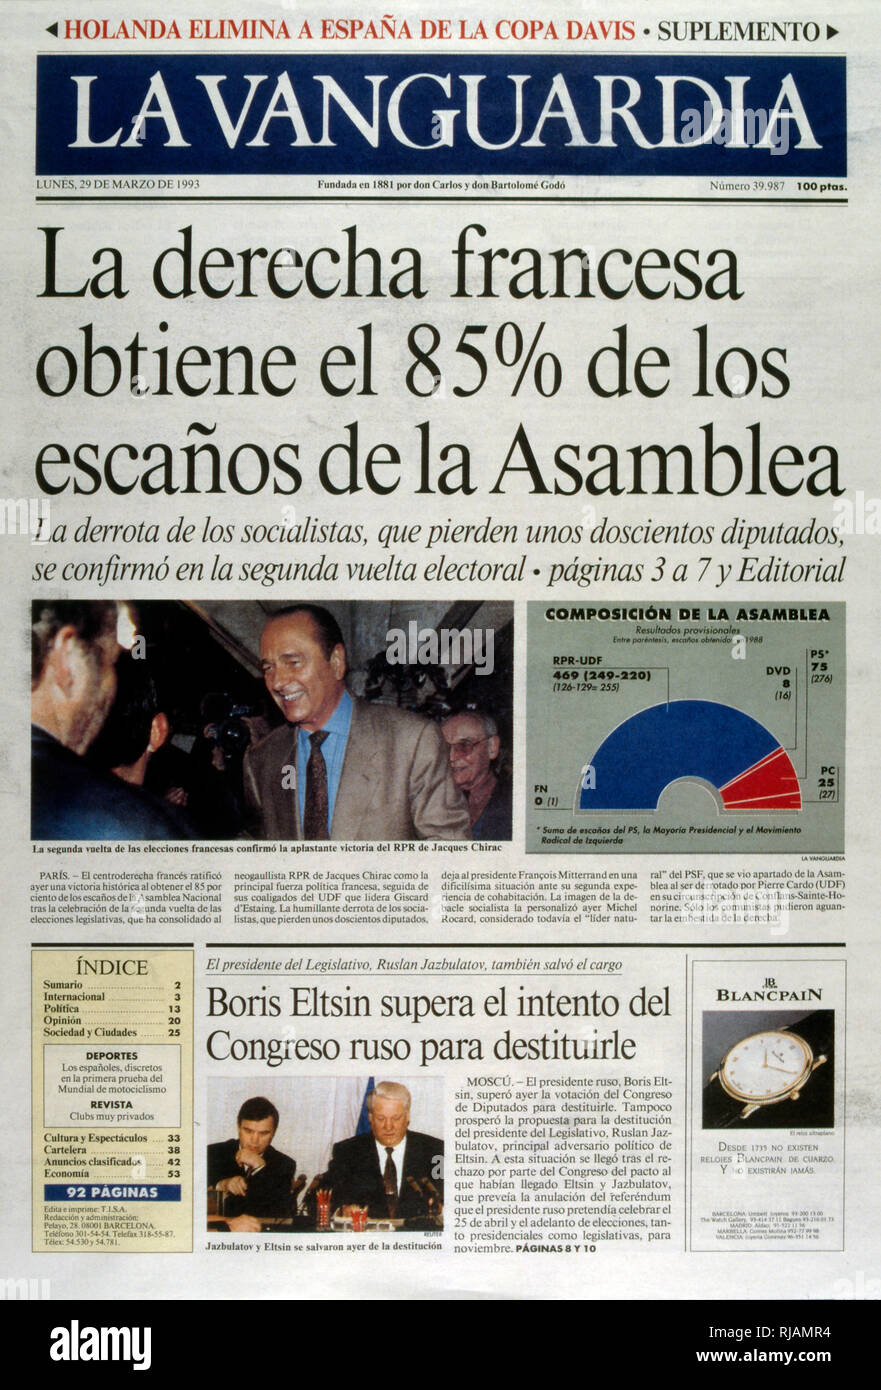 Spanish publication 'La Vanguardia' Publishes the results of the second round of the French legislative elections in March 1993 to elect the tenth National Assembly of the Fifth Republic. The election was a landslide victory for the RPR-UDF alliance, while the PS and their left-wing allies received their worst result since the 1960s - Stock Image